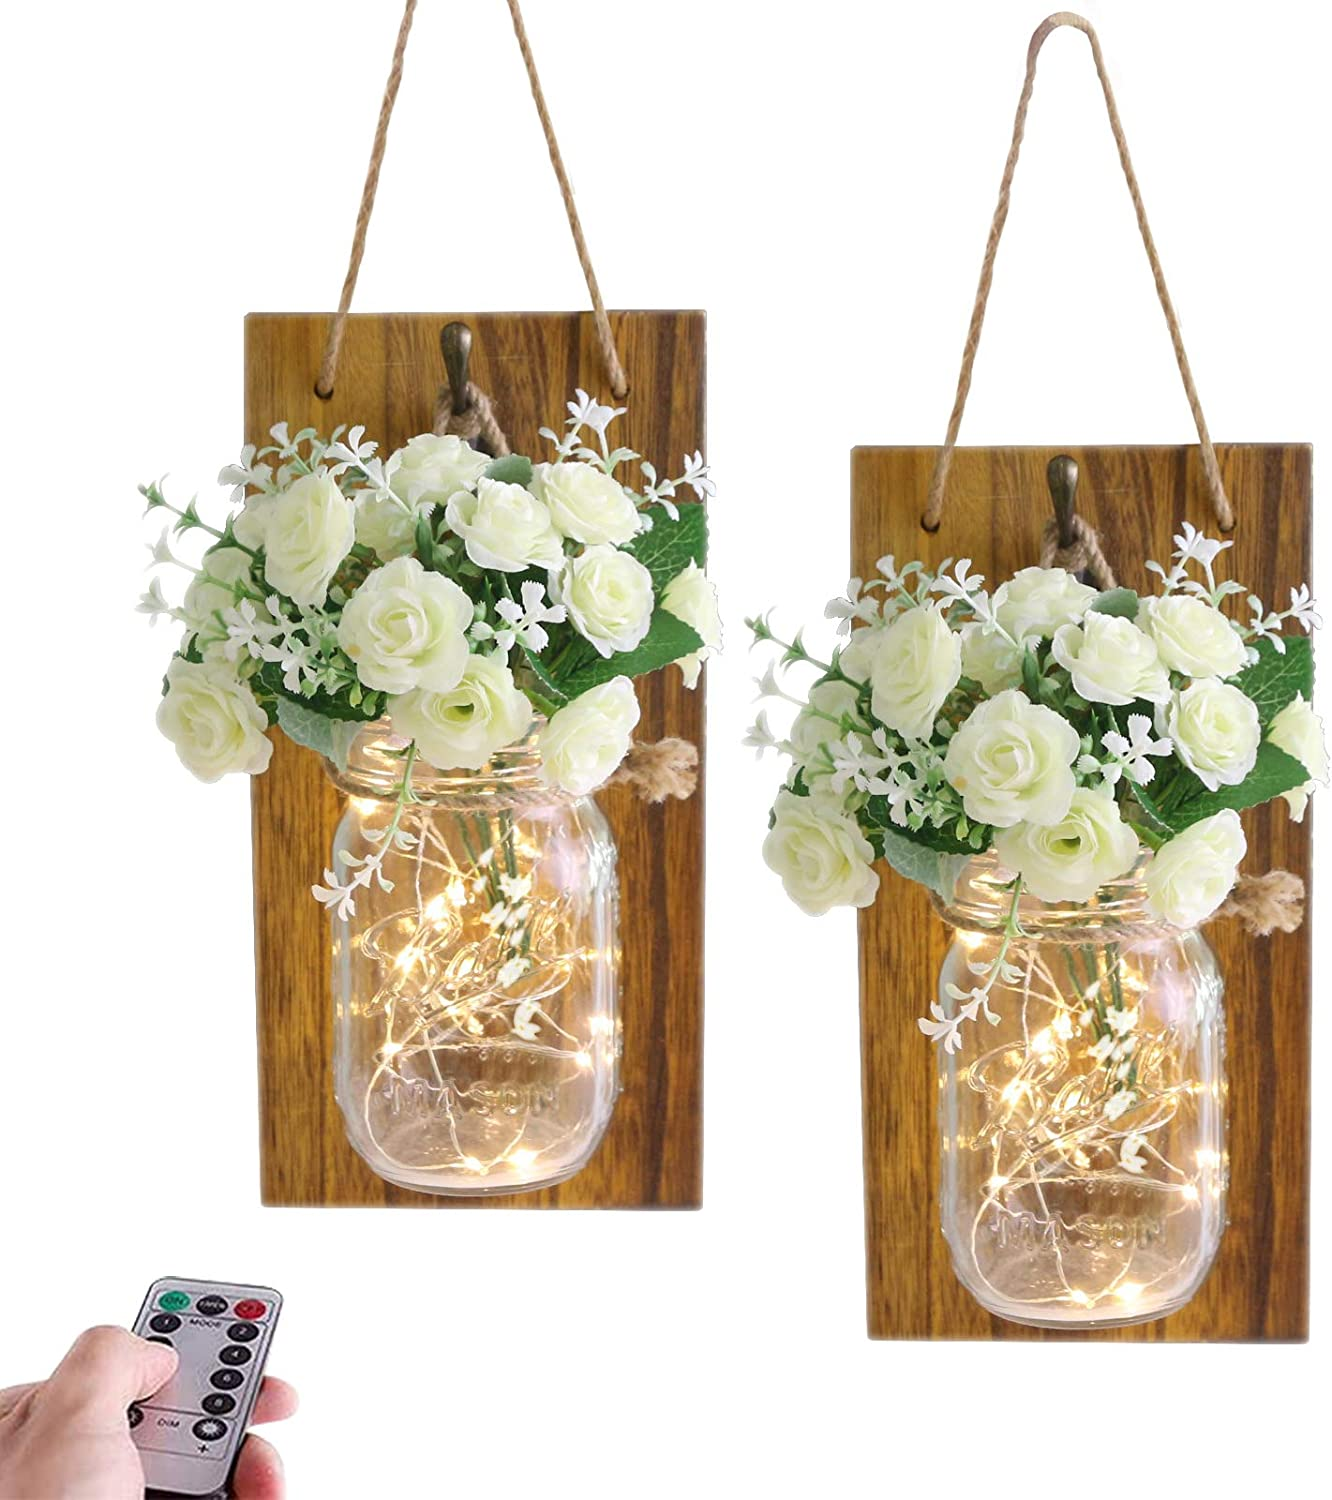 Wall Mason Jar Decor, Mason Jar Sconces, Farmhouse Wall Decor, Home Decorations Led Fairy lights with Remote Control, Rustic Wooden Board with Bronze Retro Hooks (Set of 2)